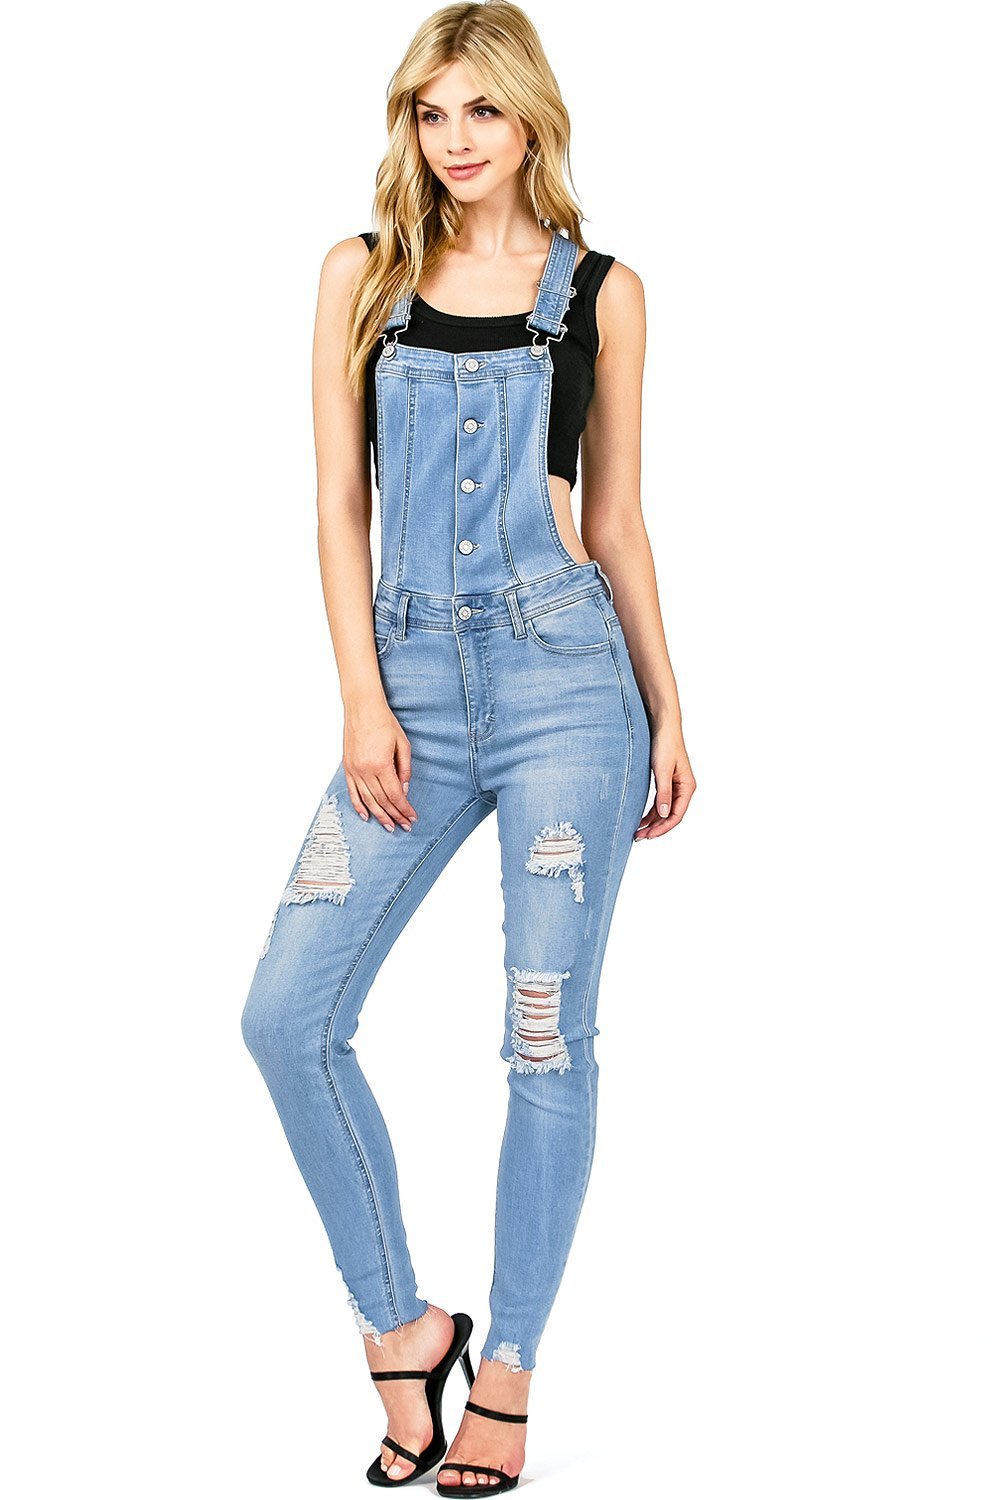 Celebrity Pink Women's Juniors Distressed Skinny Overalls (S, Light Denim)